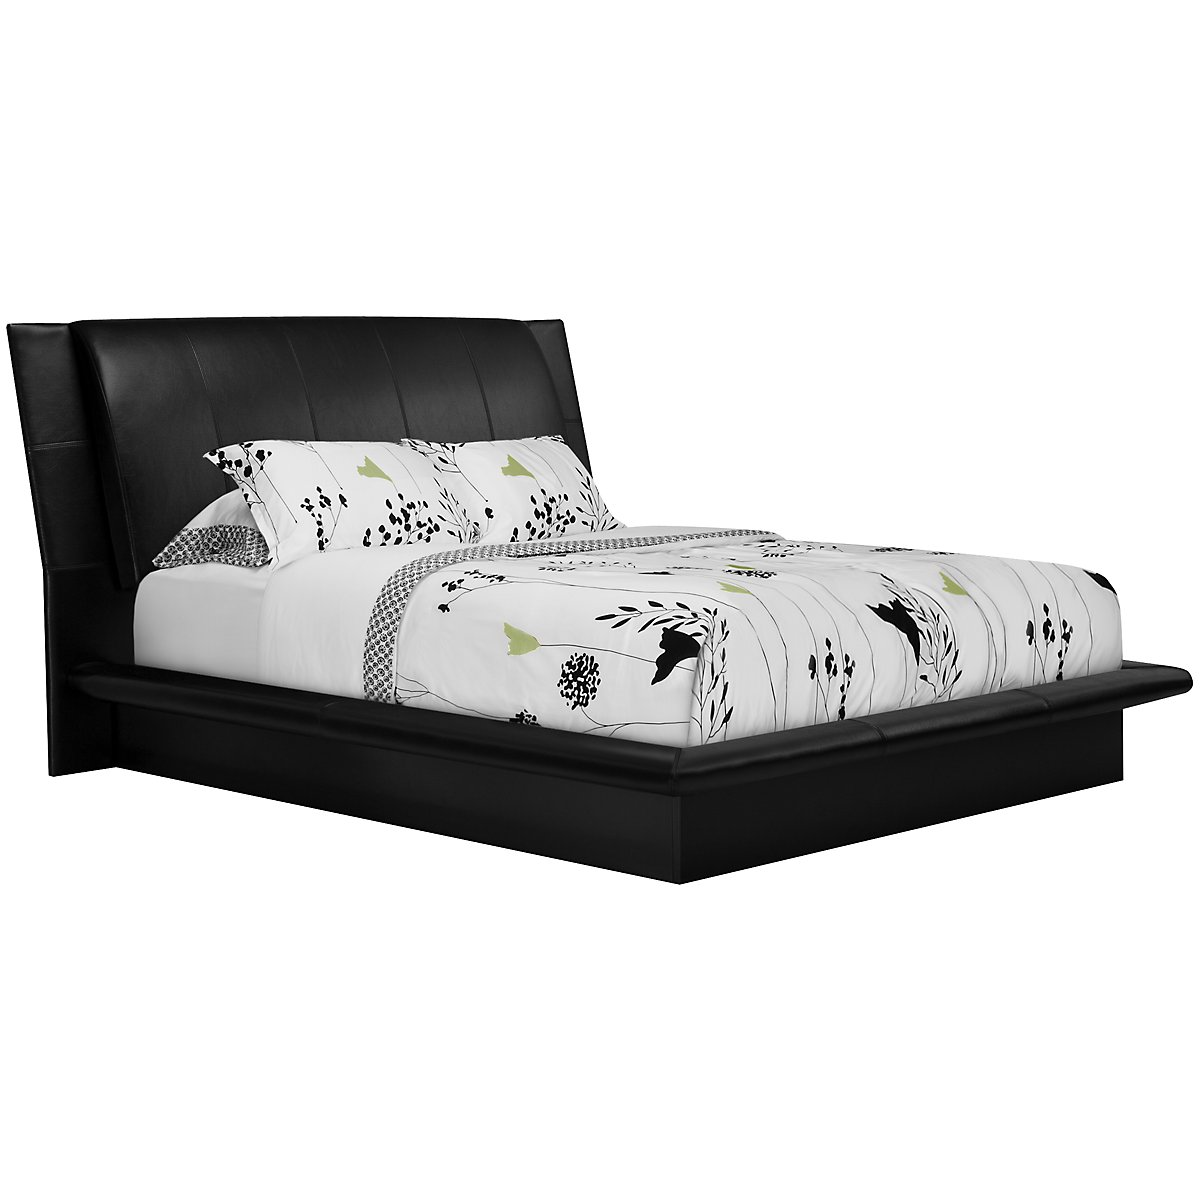 Dimora Black Upholstered Platform Bed